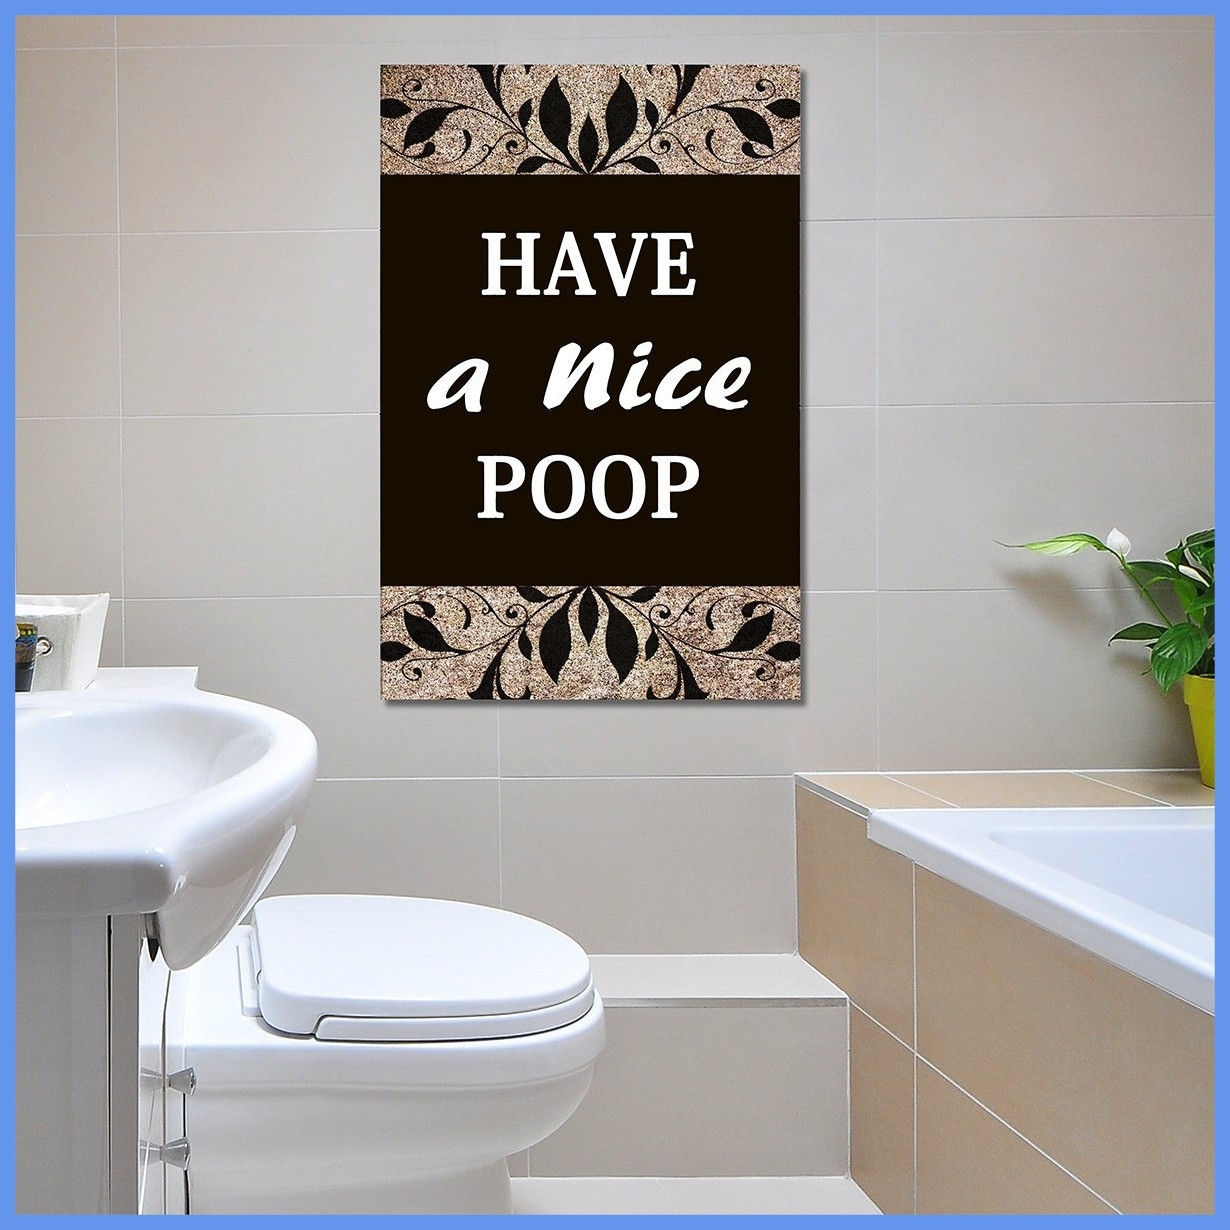 Fascinating Unusual Idea Wall Art Bathroom Have A Nice Poop Humor Intended For Current Unusual Wall Art (View 7 of 20)